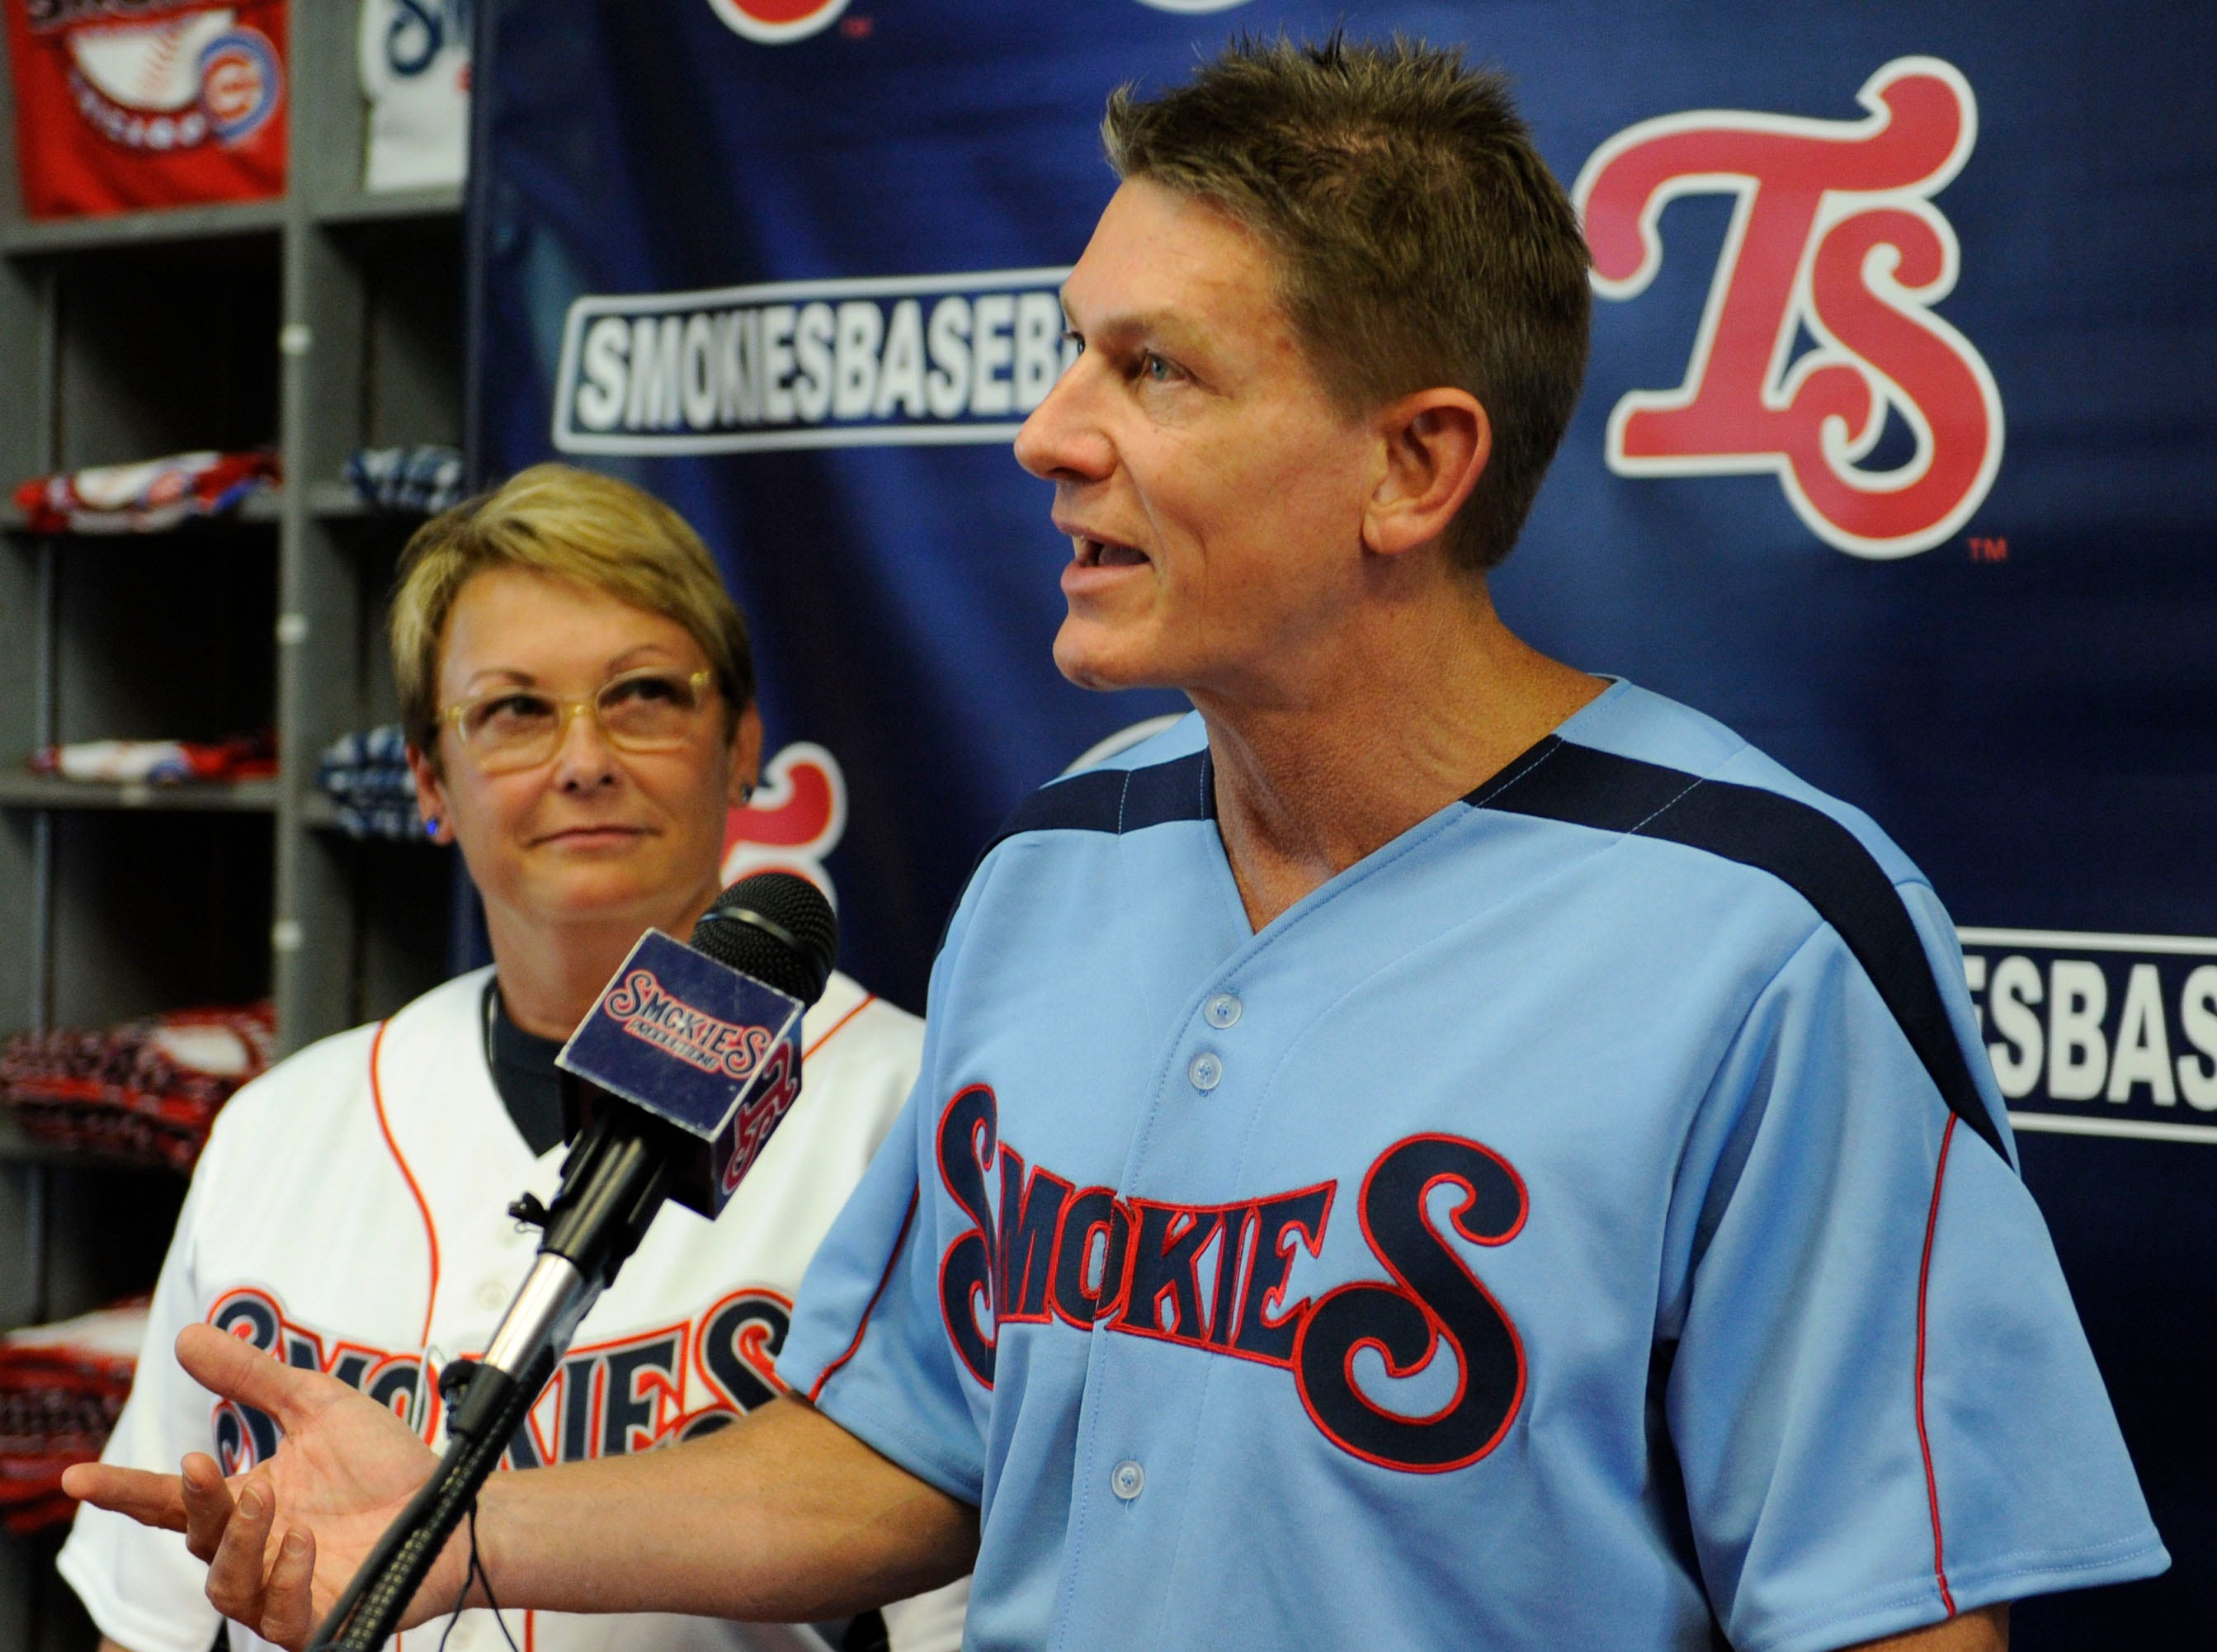 Randy Boyd, right, and his wife Jenny, were announced as the new owners of the minor league Tennessee Smokies baseball team during a press conference at the Kodak ball park, Friday, June 28, 2013.